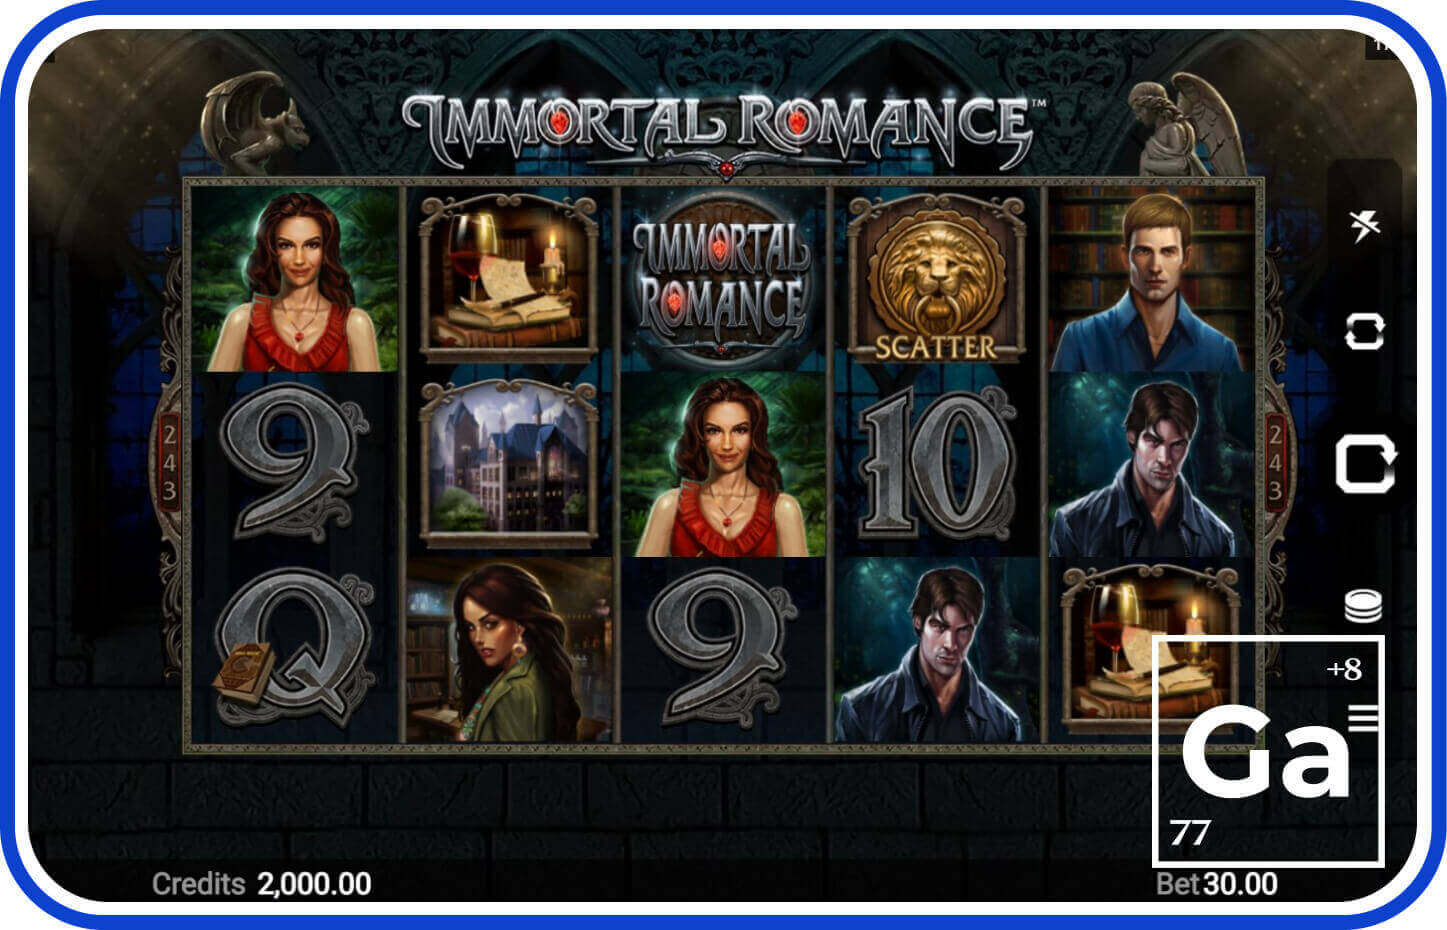 Immortal Romance slot by Microgaming